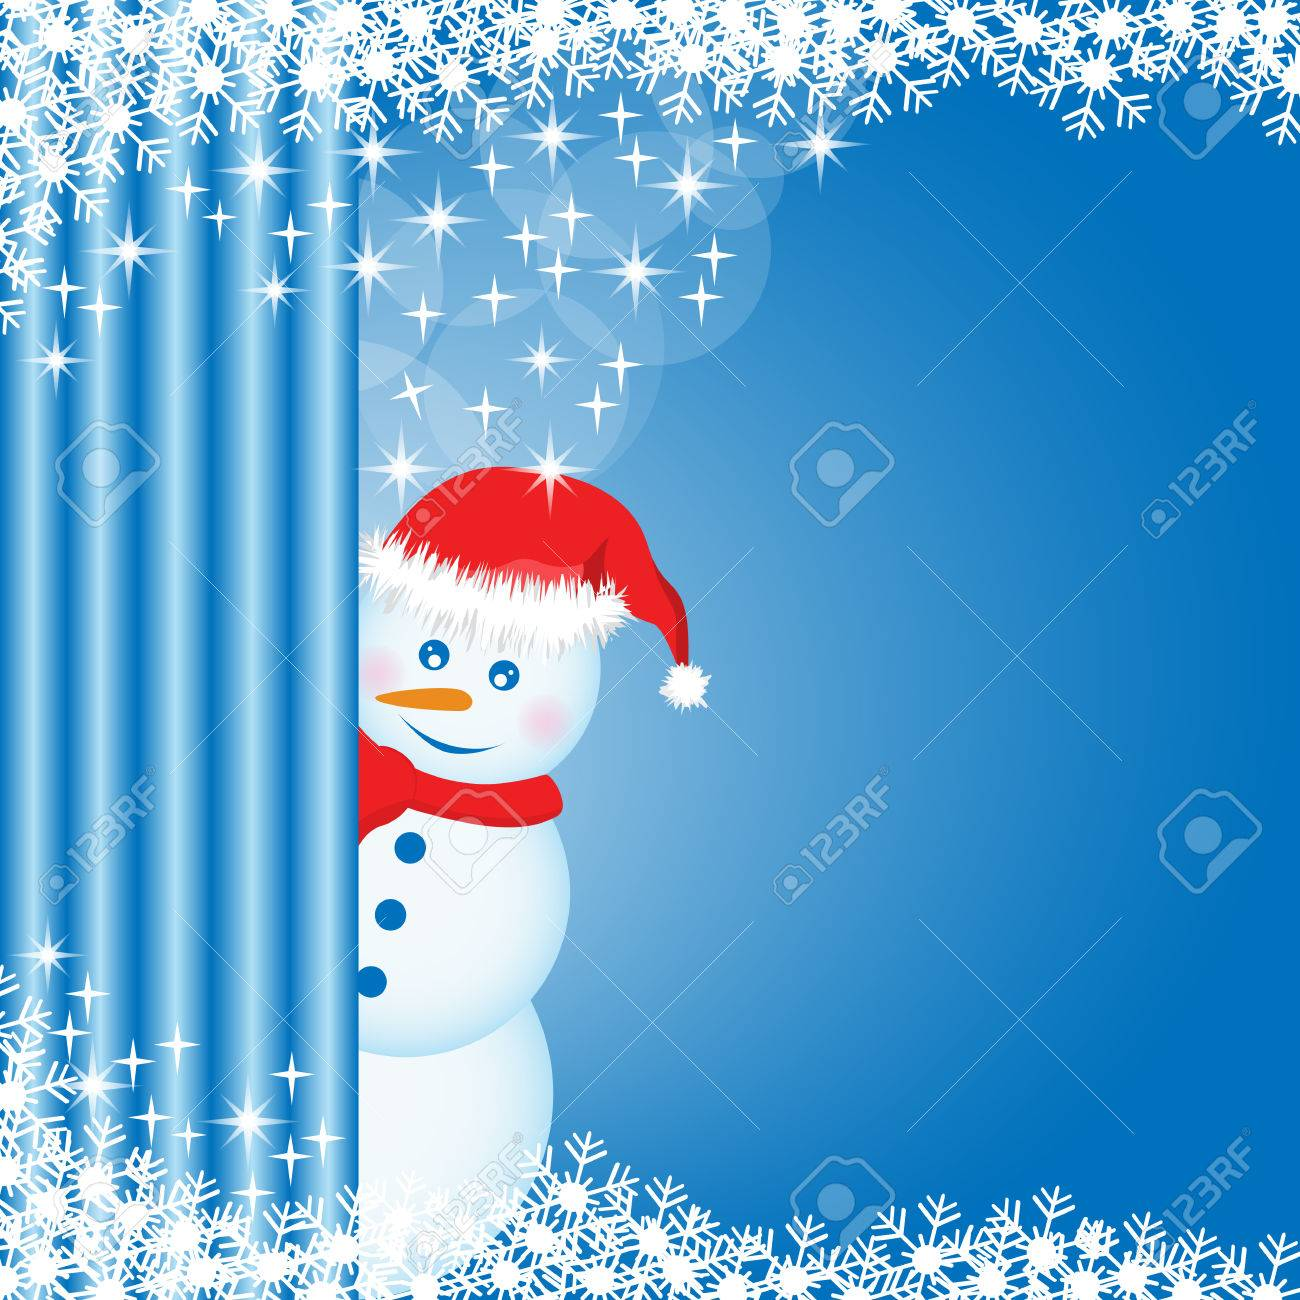 Snowman peeping behind a curtain, snowflakes and stars on blue xmas background. Copy space for text. Stock Vector - 7864410